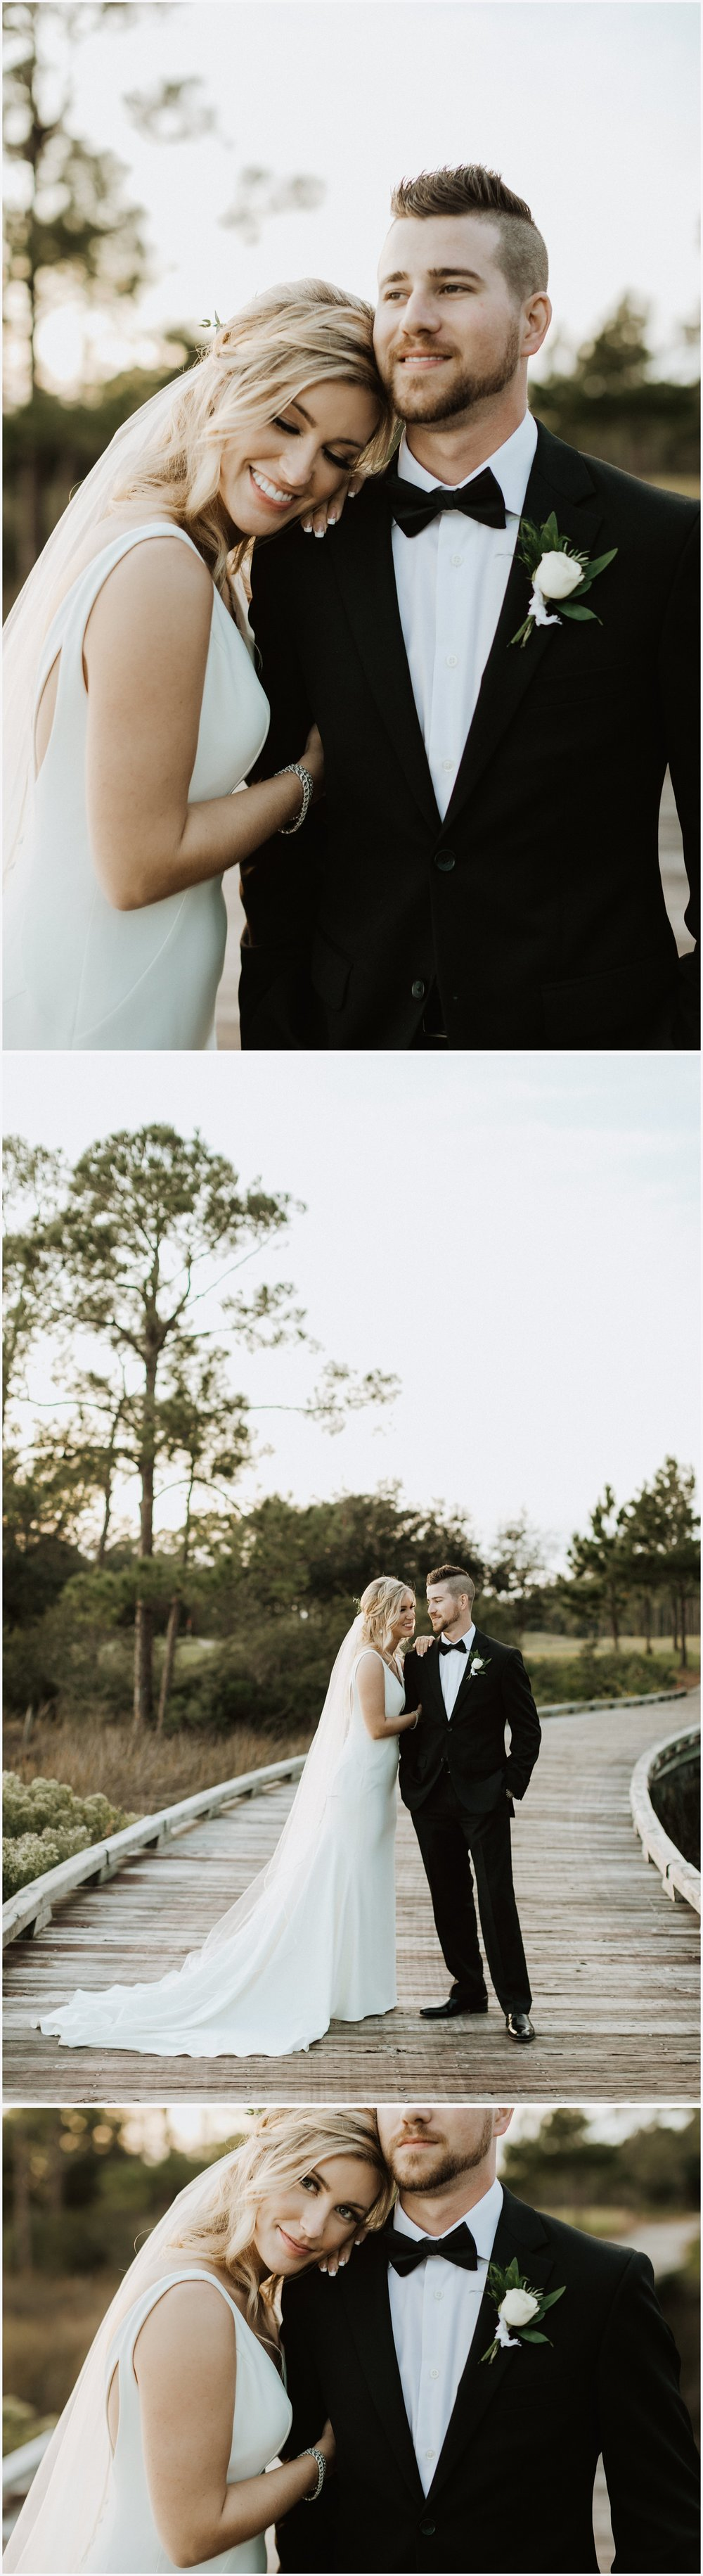 Bride and groom's wedding portraits at their Shark's Tooth Golf Club Wedding